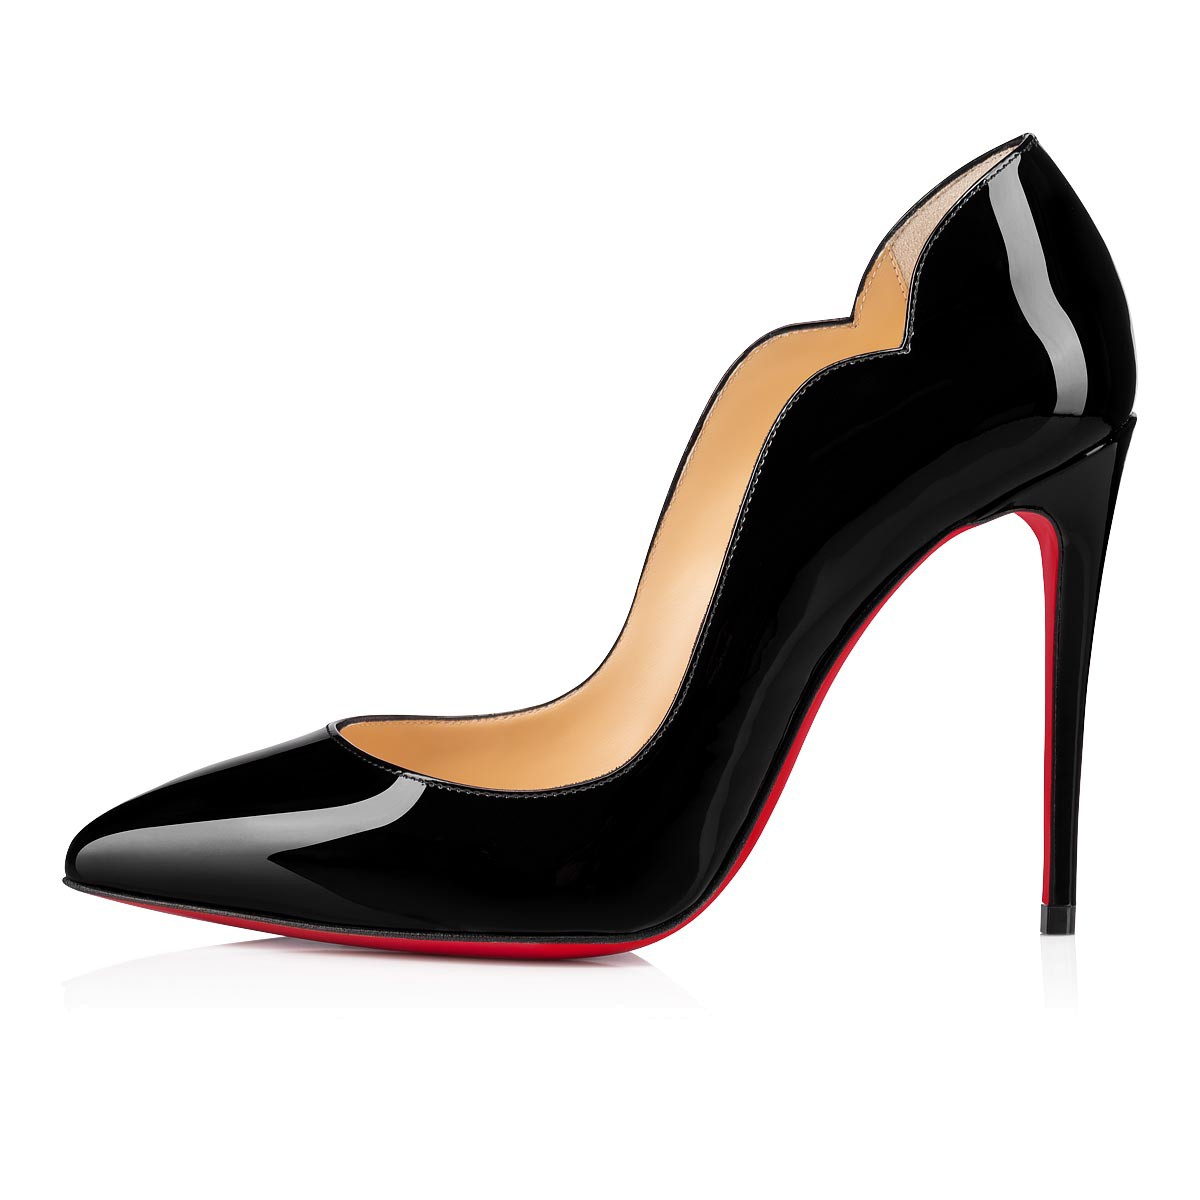 ウィメンズシューズ - Hot Chick - Christian Louboutin